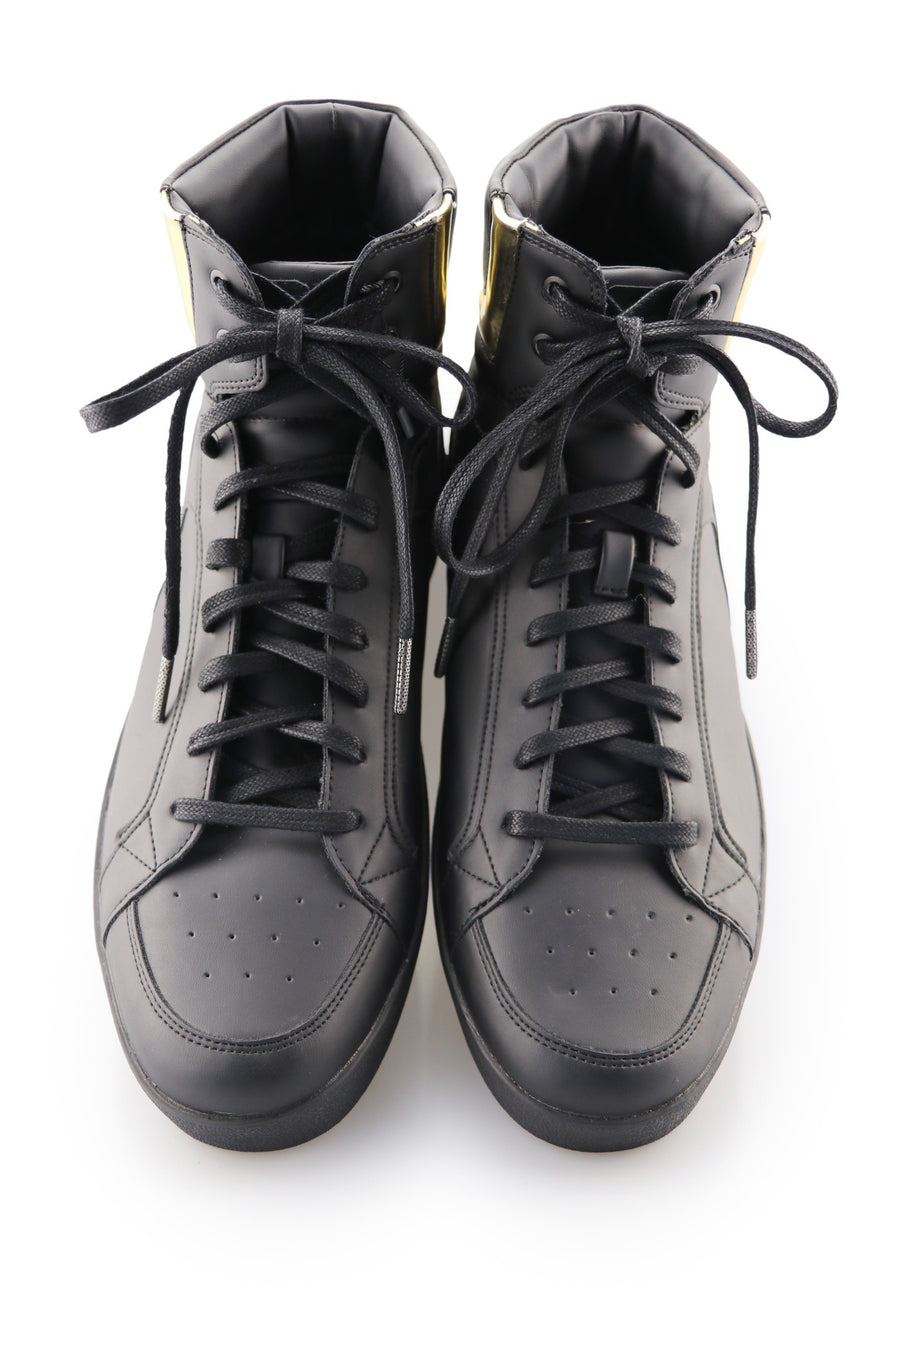 Black Sneaker Shoe Laces Ted and Lemon